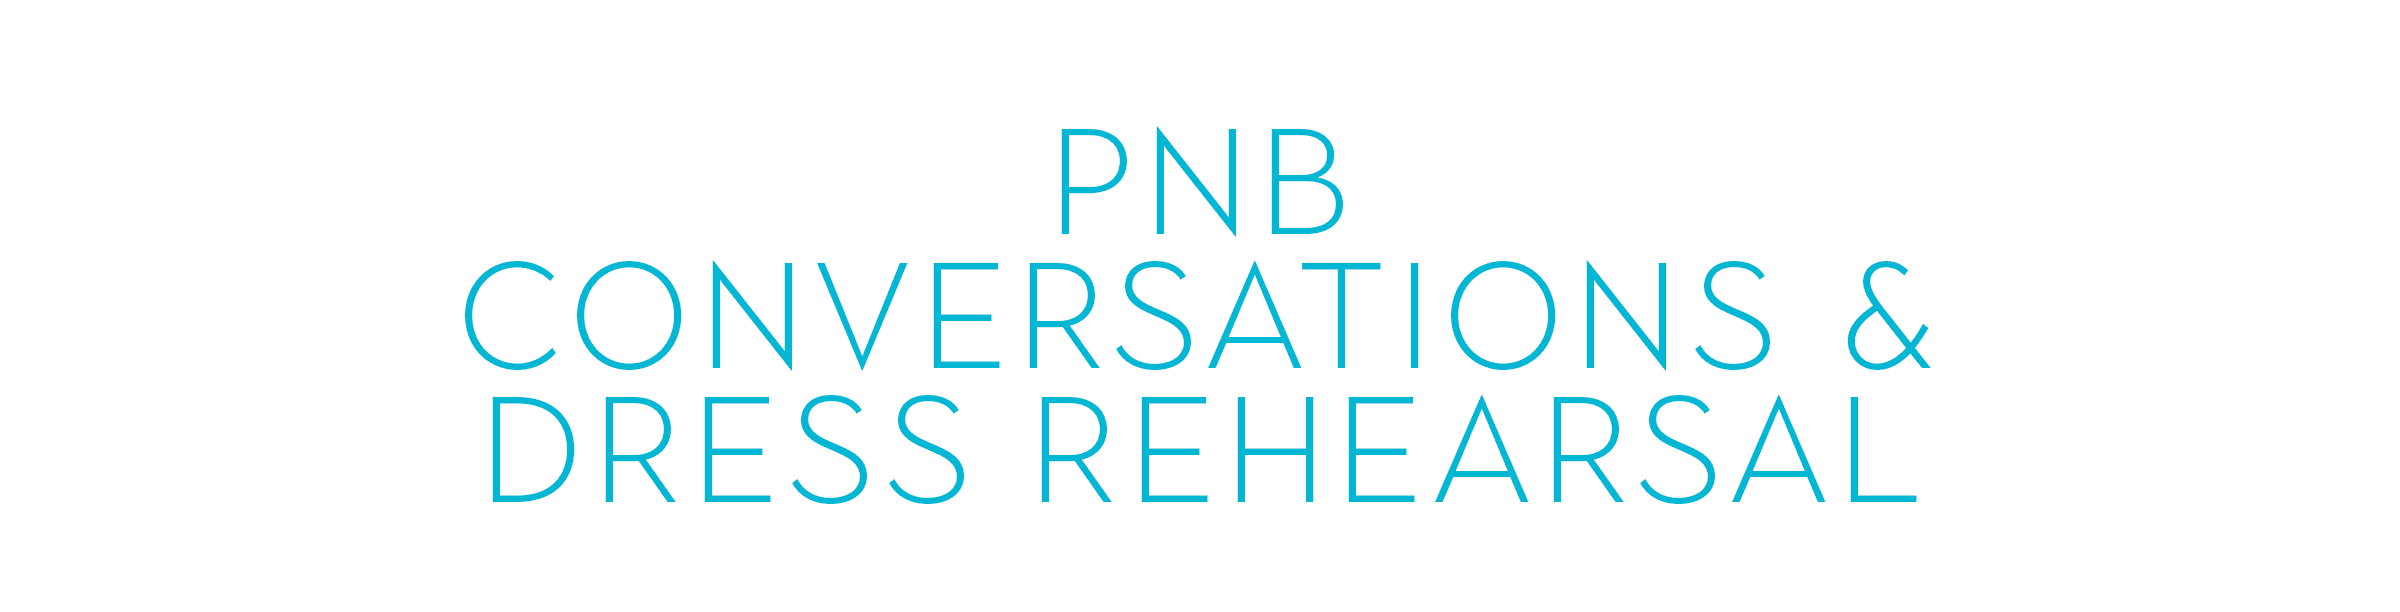 PNB Conversations and Dress Rehearsal